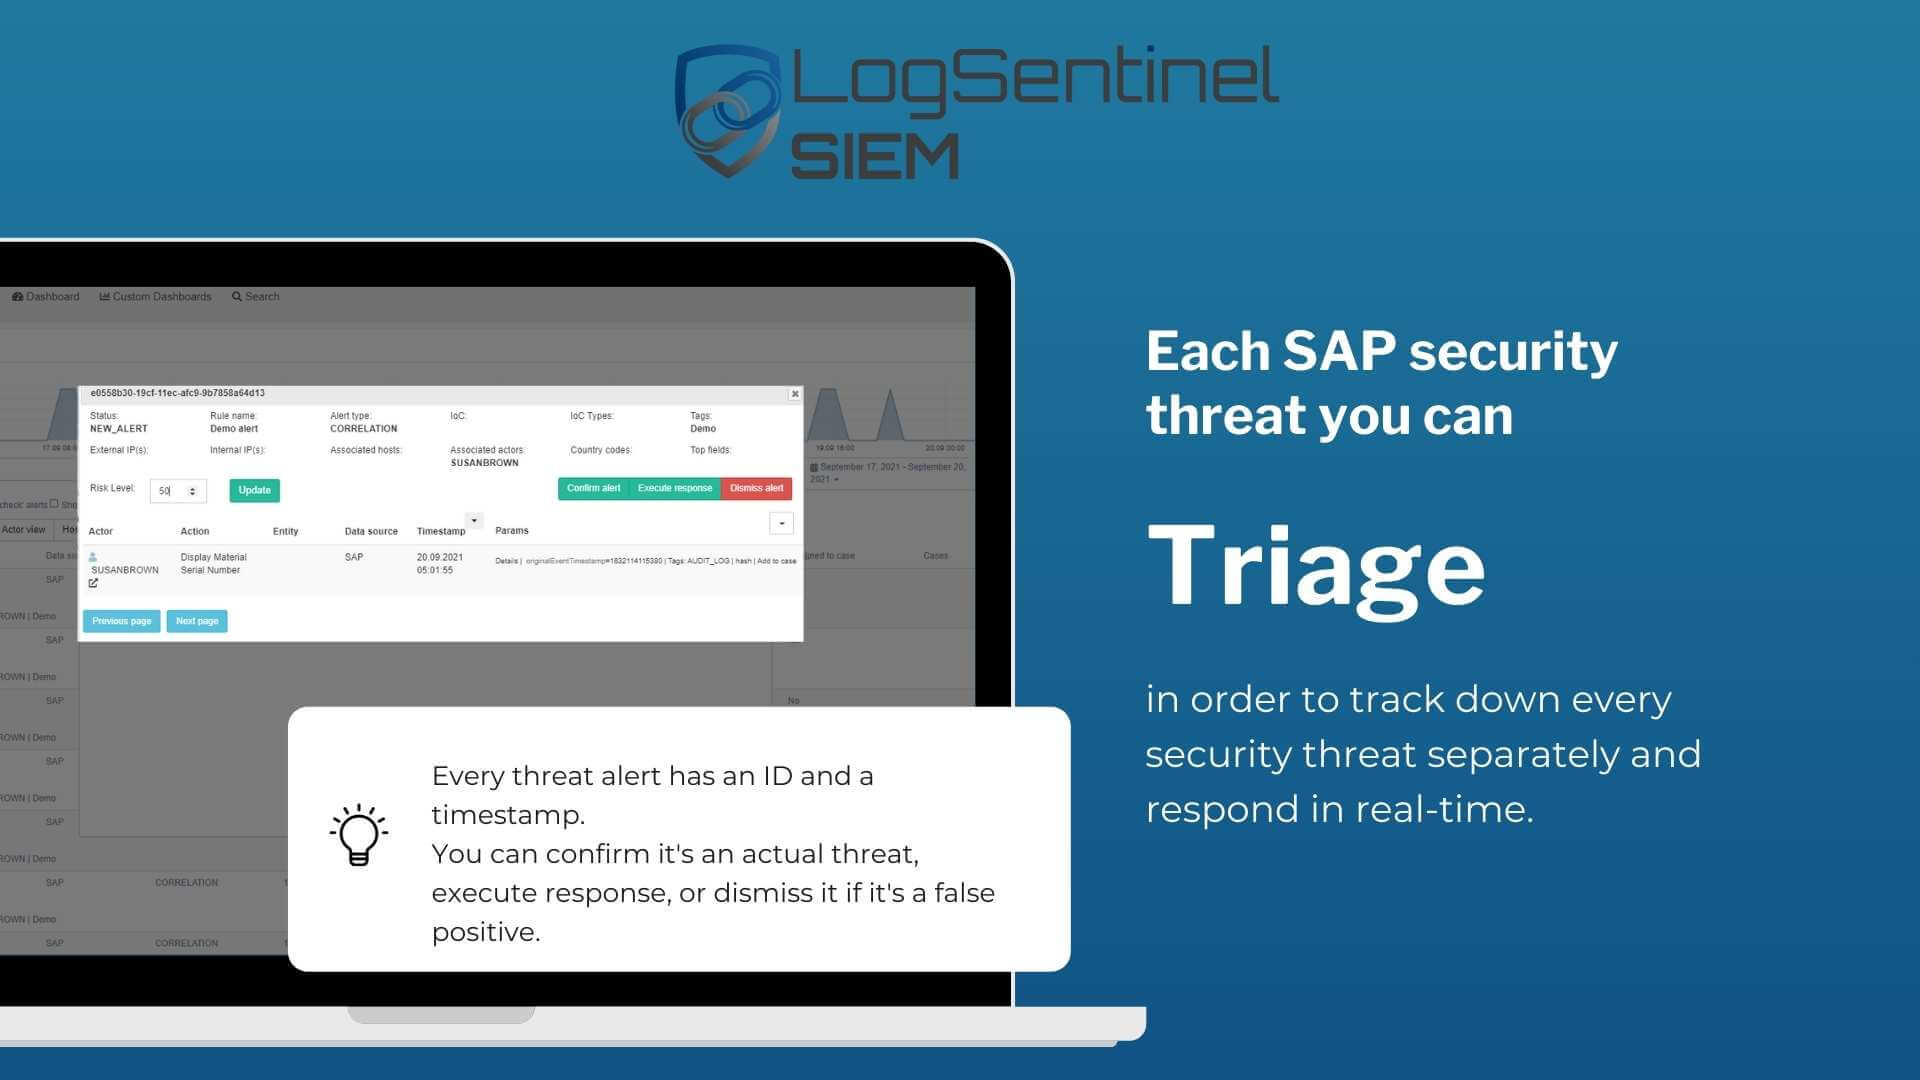 Triage security threats